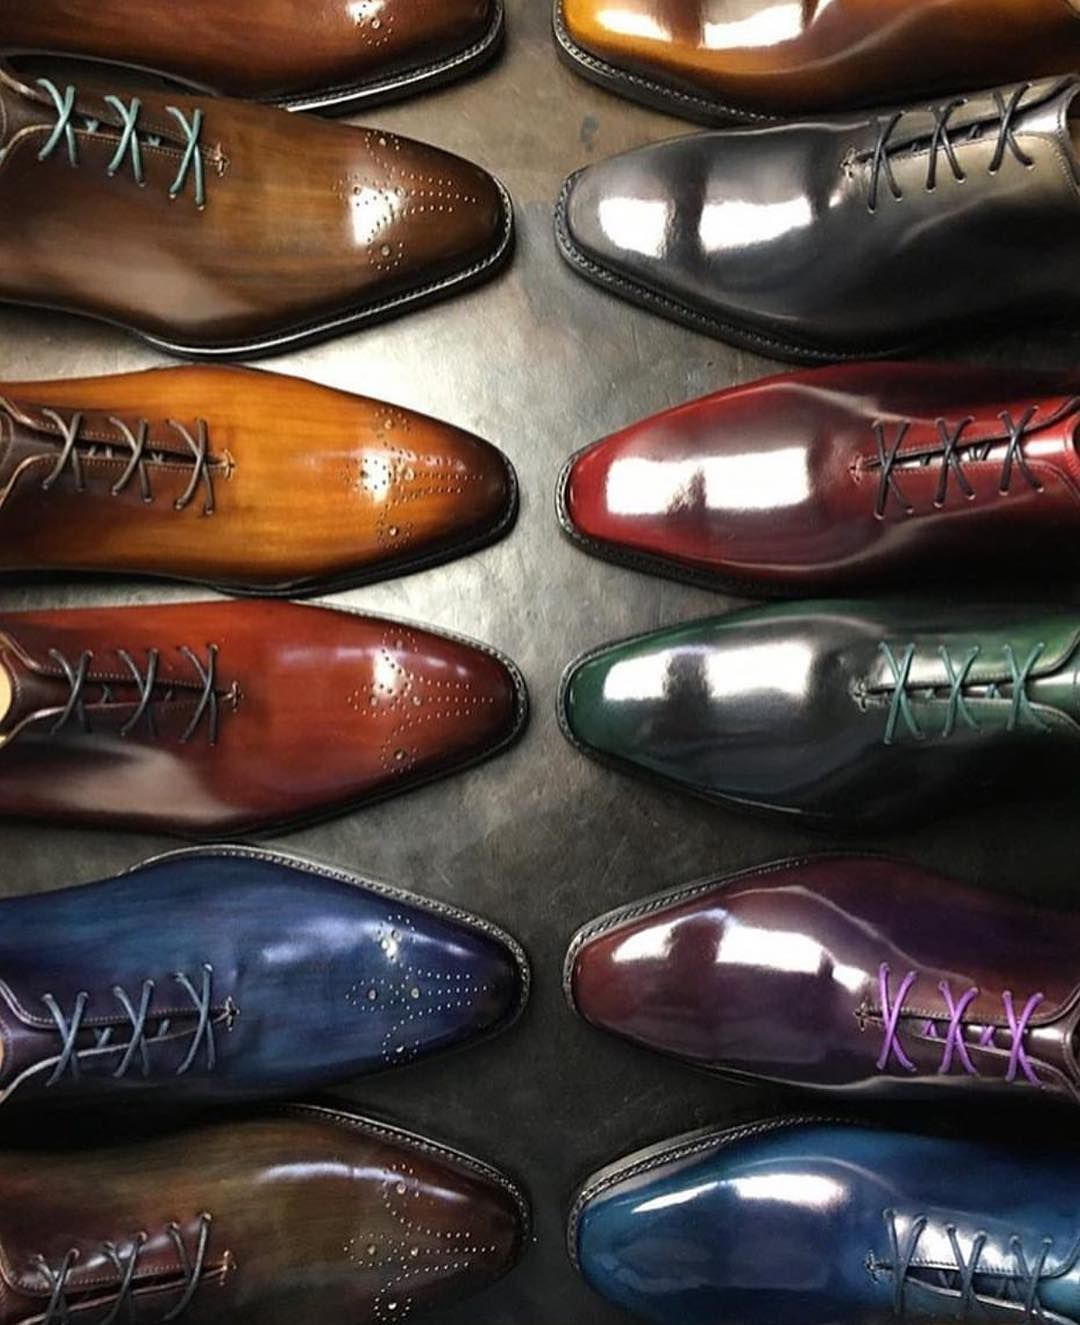 Select your Favorite Color  via @tomclaeren  #mensuiteam #menswear #menstyle #menfashion #picoftheday #photooftheday #menshoe by mensuitsteam